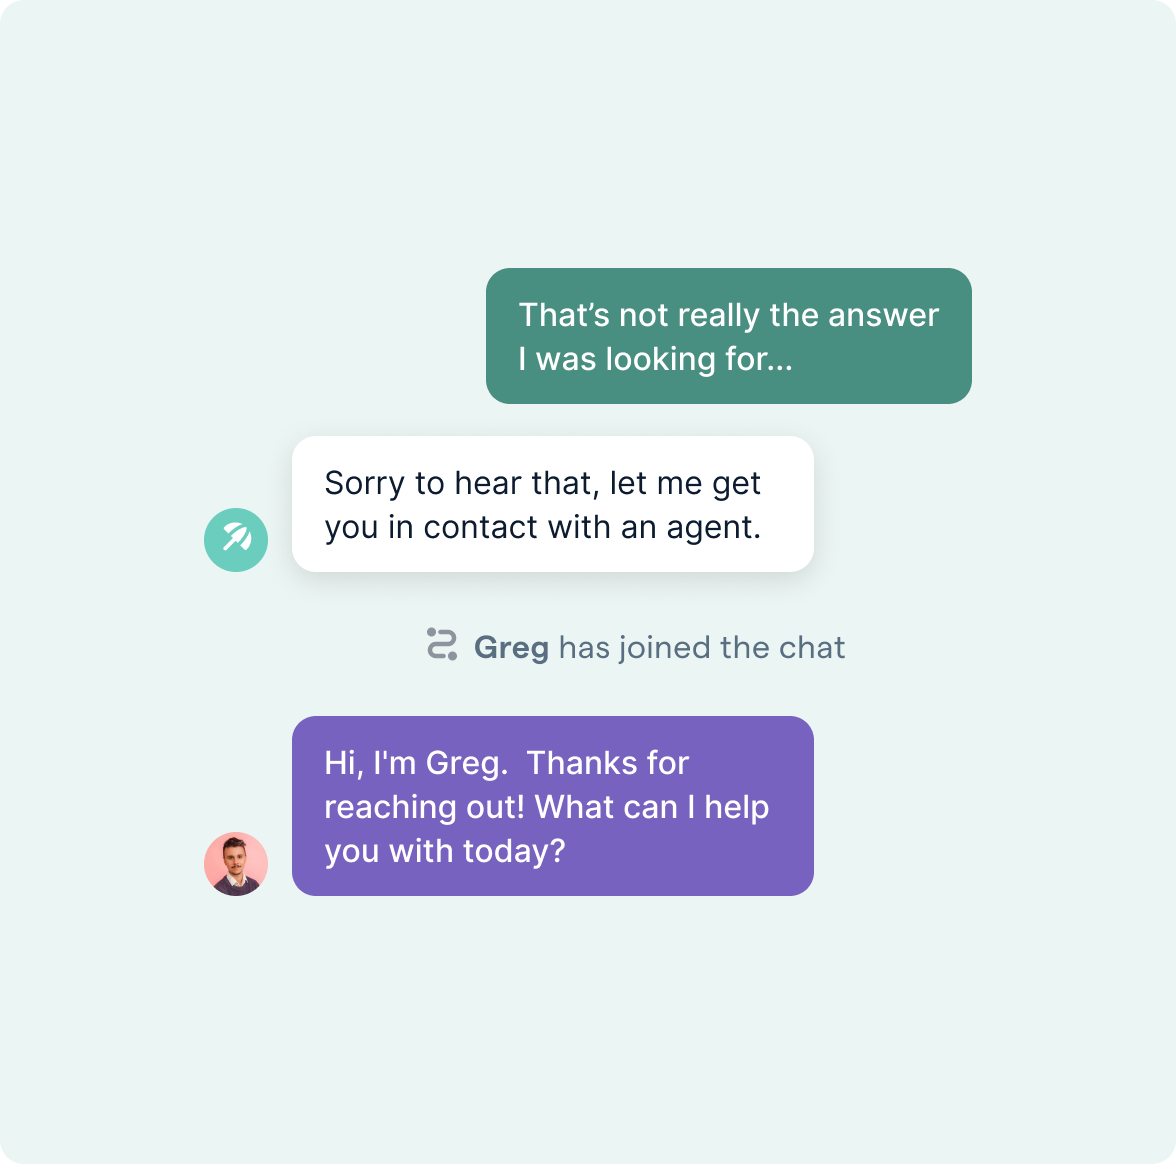 Bot Transferring Conversation to Human Agent